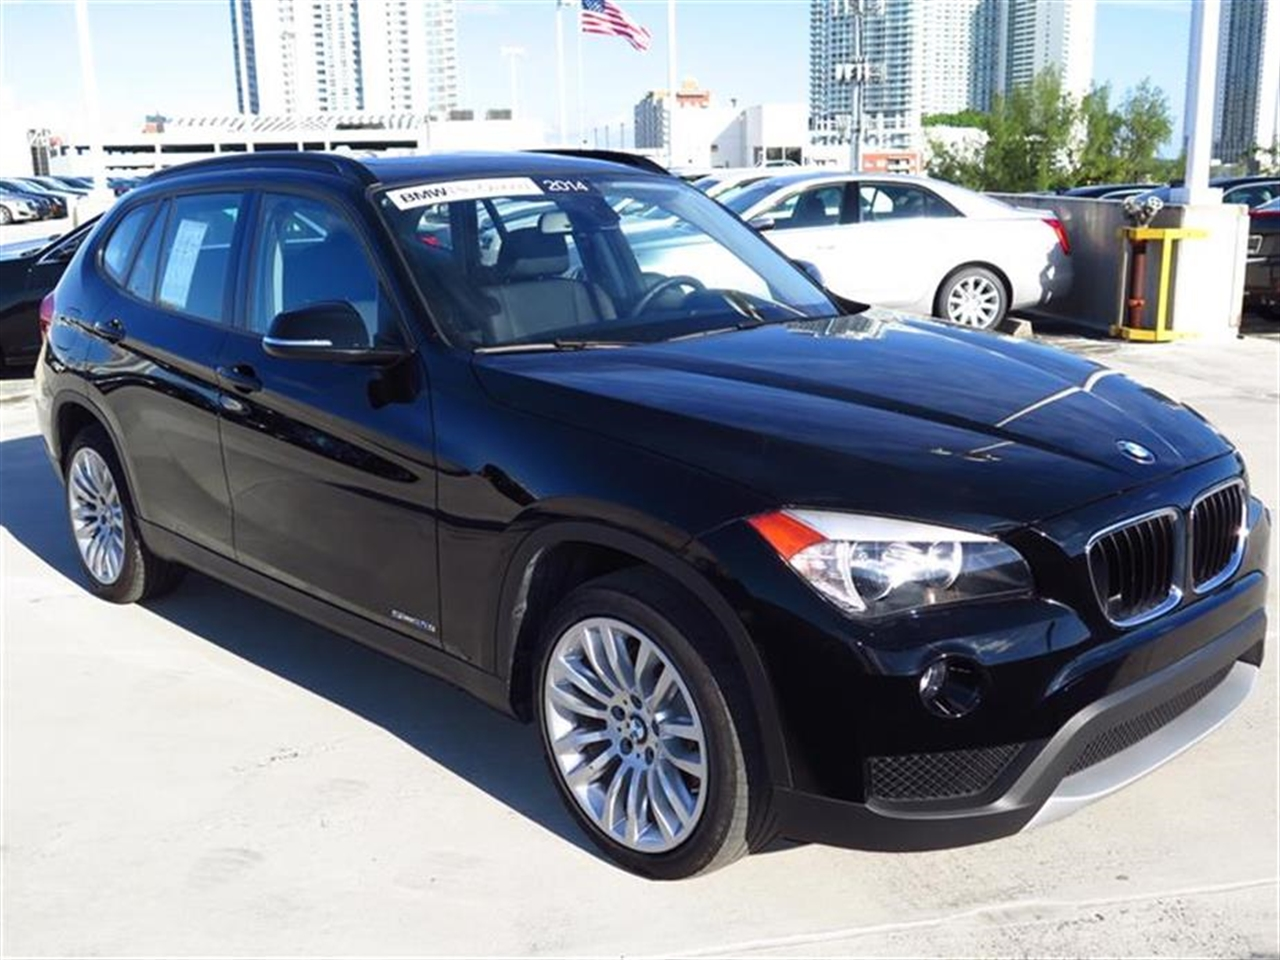 2014 BMW X1 RWD 4dr sDrive28i 7225 miles 2 Seatback Storage Pockets 3 12V DC Power Outlets LEATH